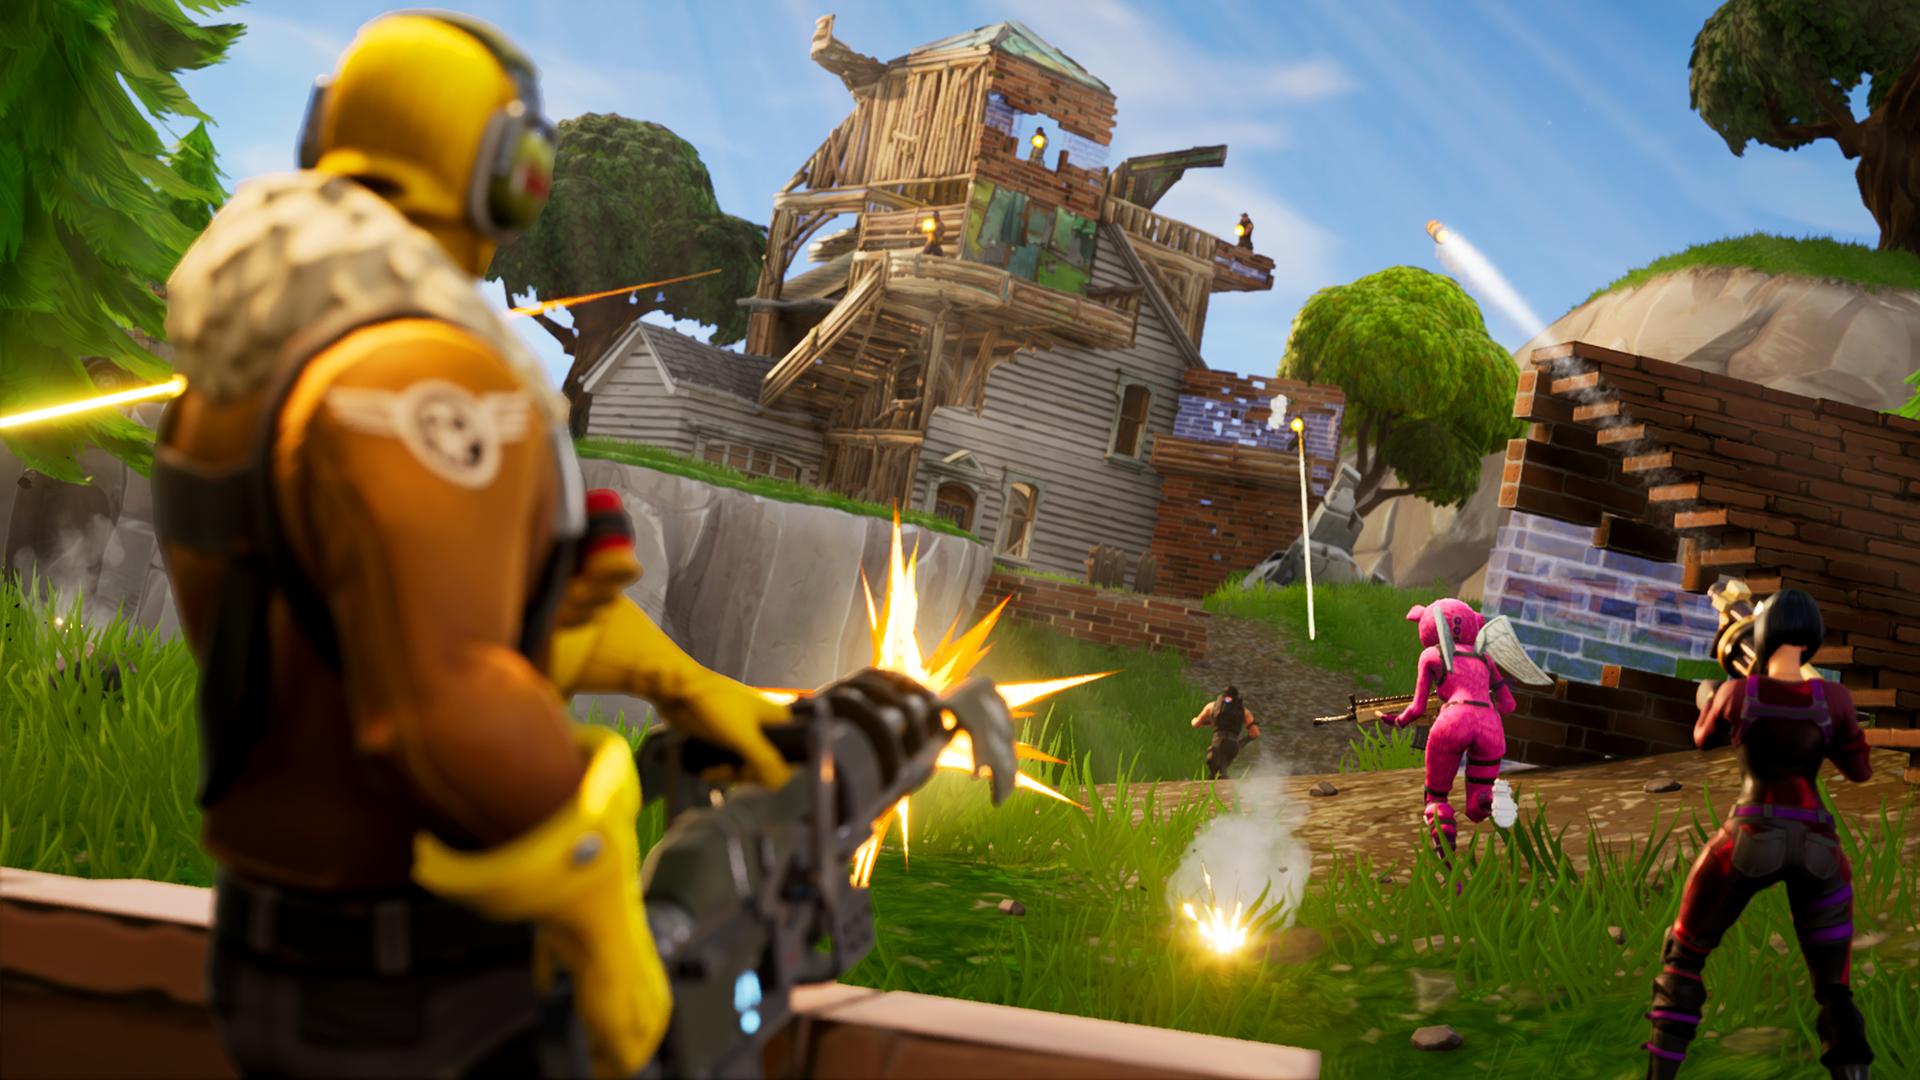 The Young Men Who Turn to 'Fortnite' for Mental Health Support | MEL